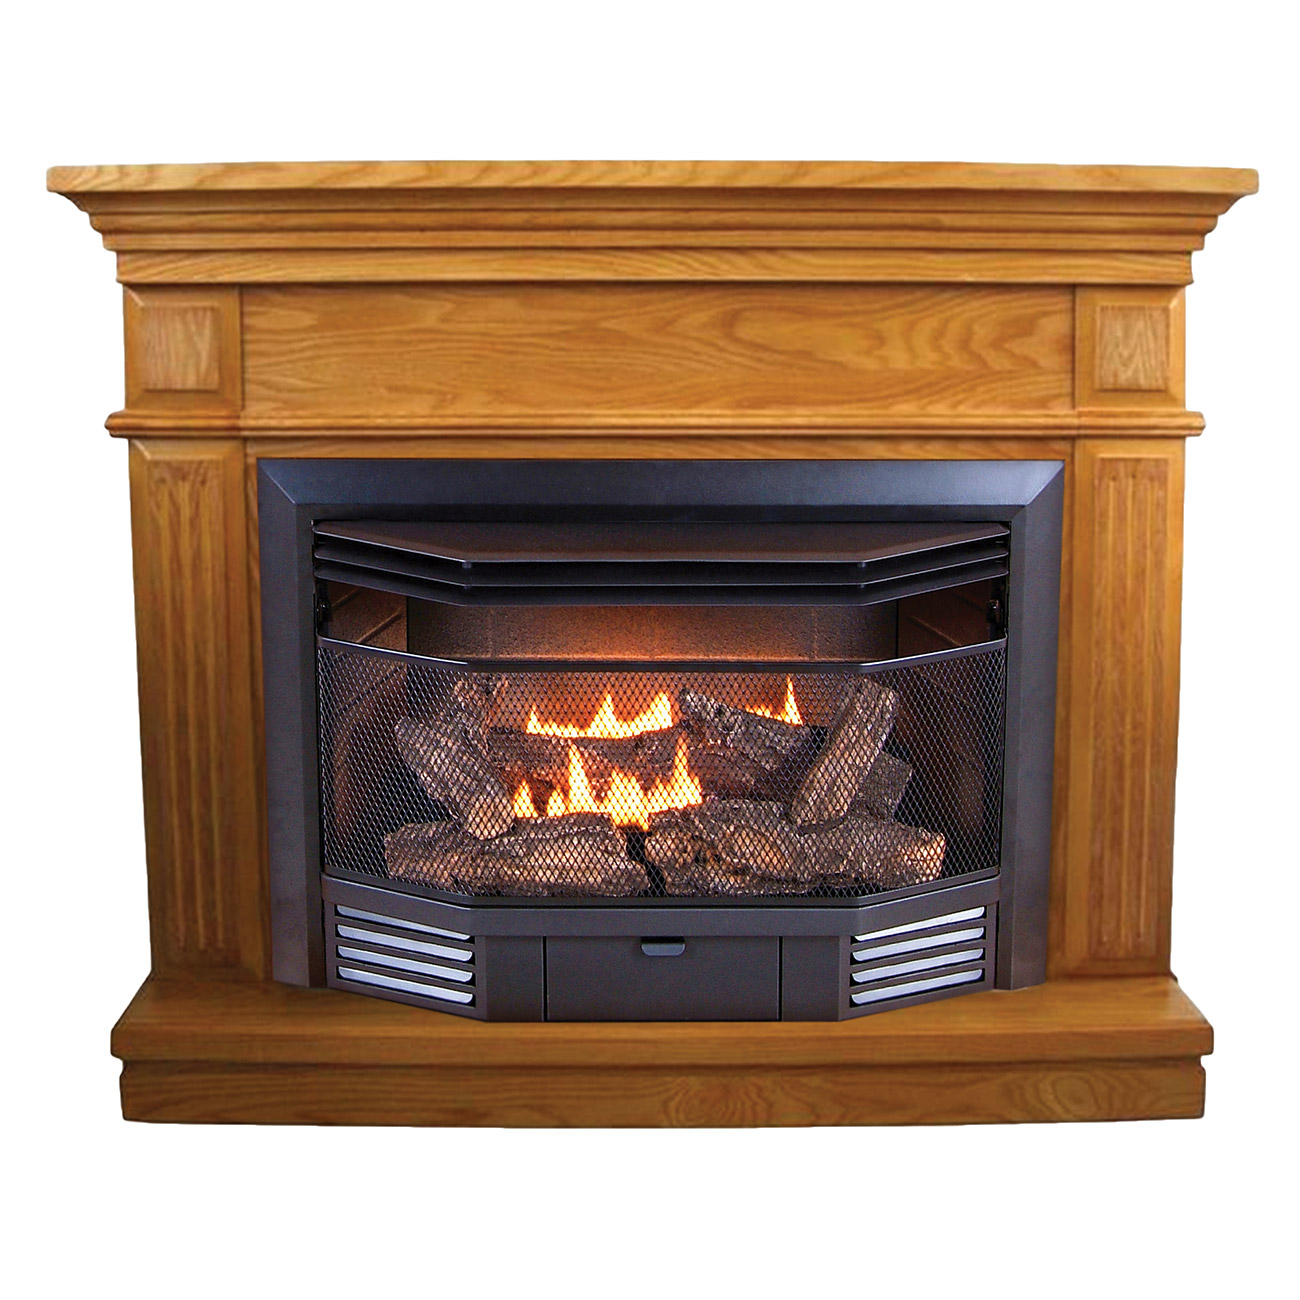 Ventless Fireplace For Model Bd23tcc 2 Lo